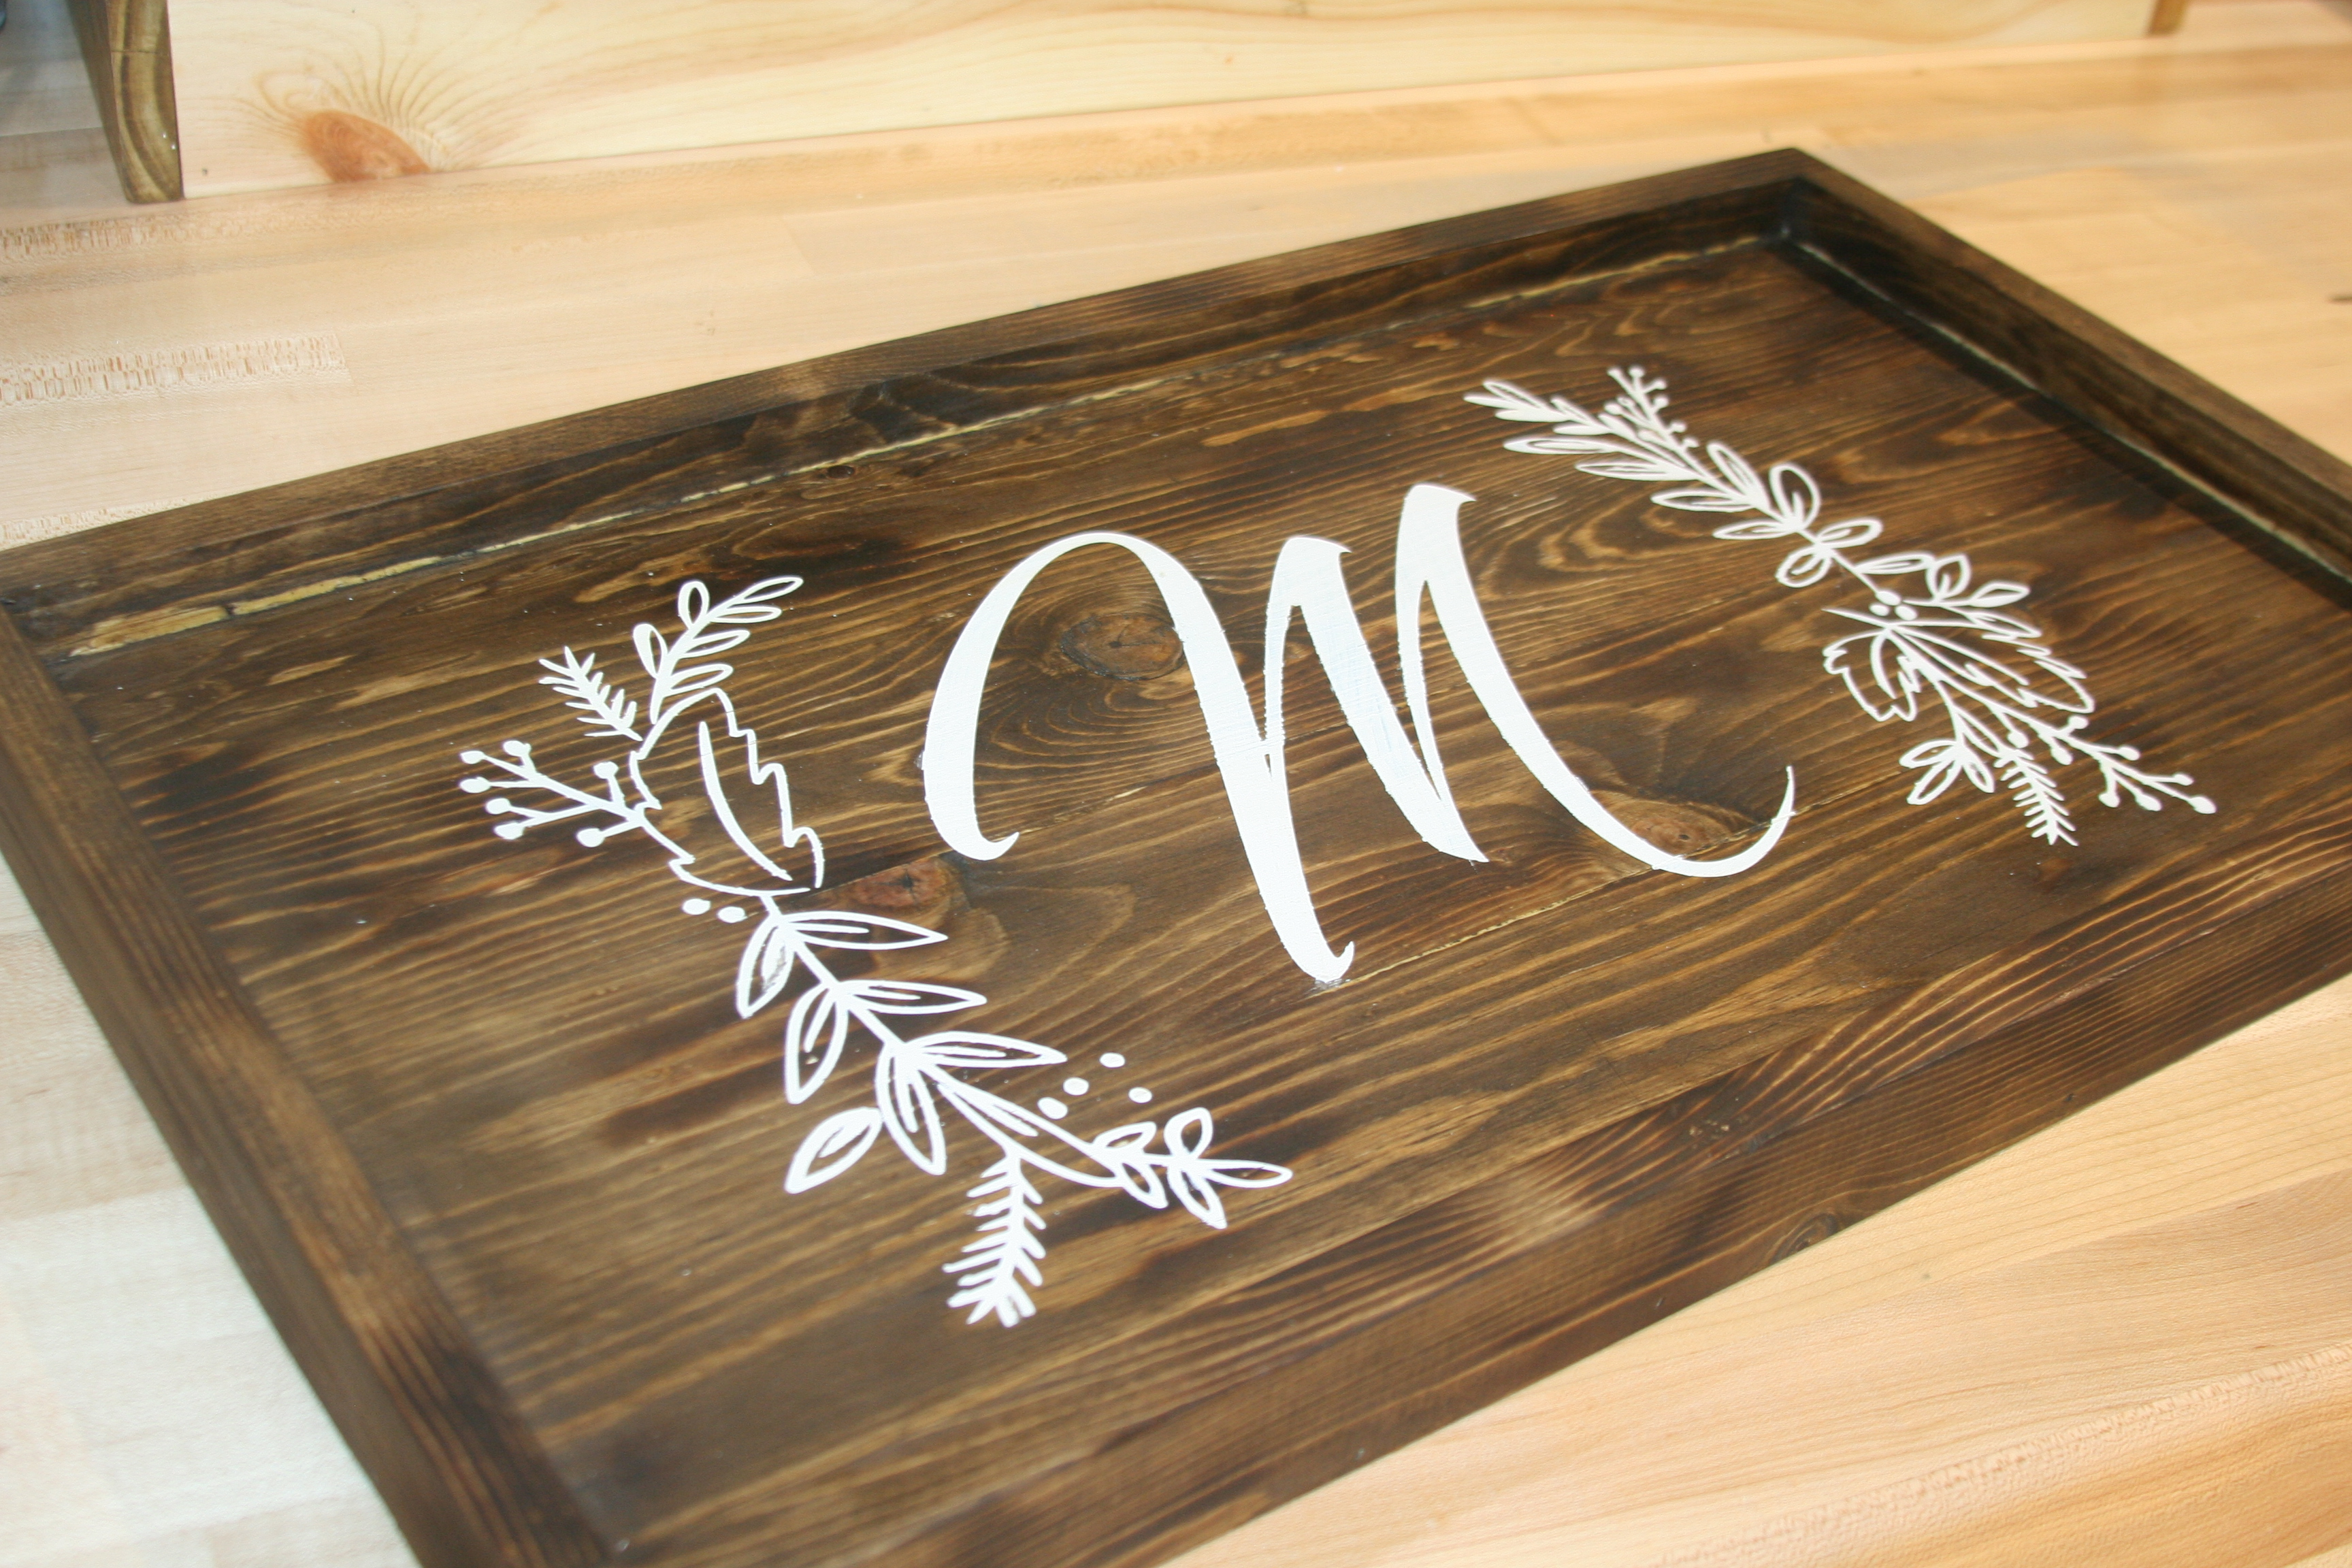 c8c0e8d06f2 Personalized Serving Tray – The Henn House